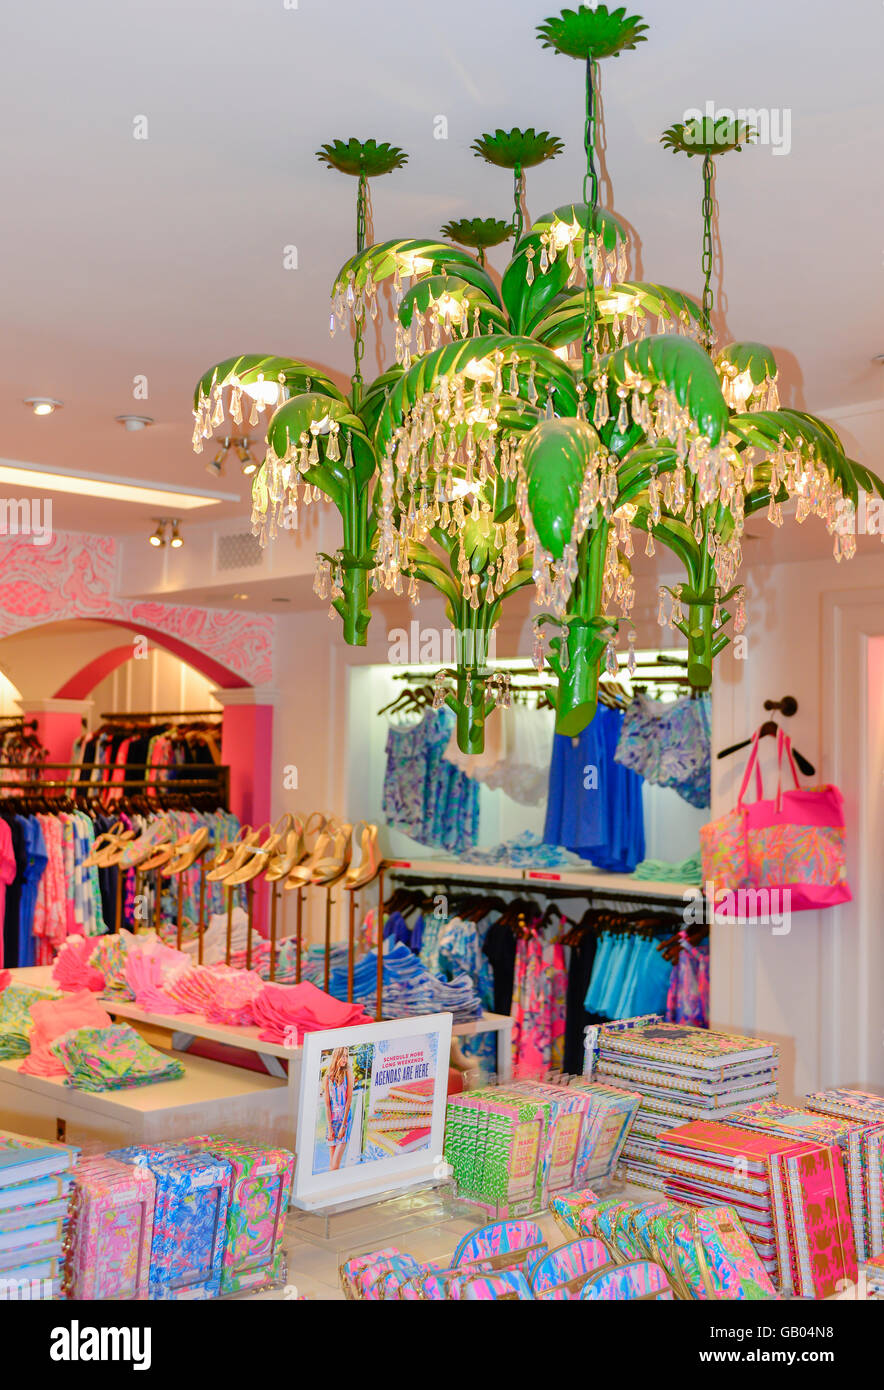 A green palm tree motif chandelier hangs inside lilly pulitzer a green palm tree motif chandelier hangs inside lilly pulitzer pink resort fashion store on st armands circle in sarasota fl aloadofball Choice Image